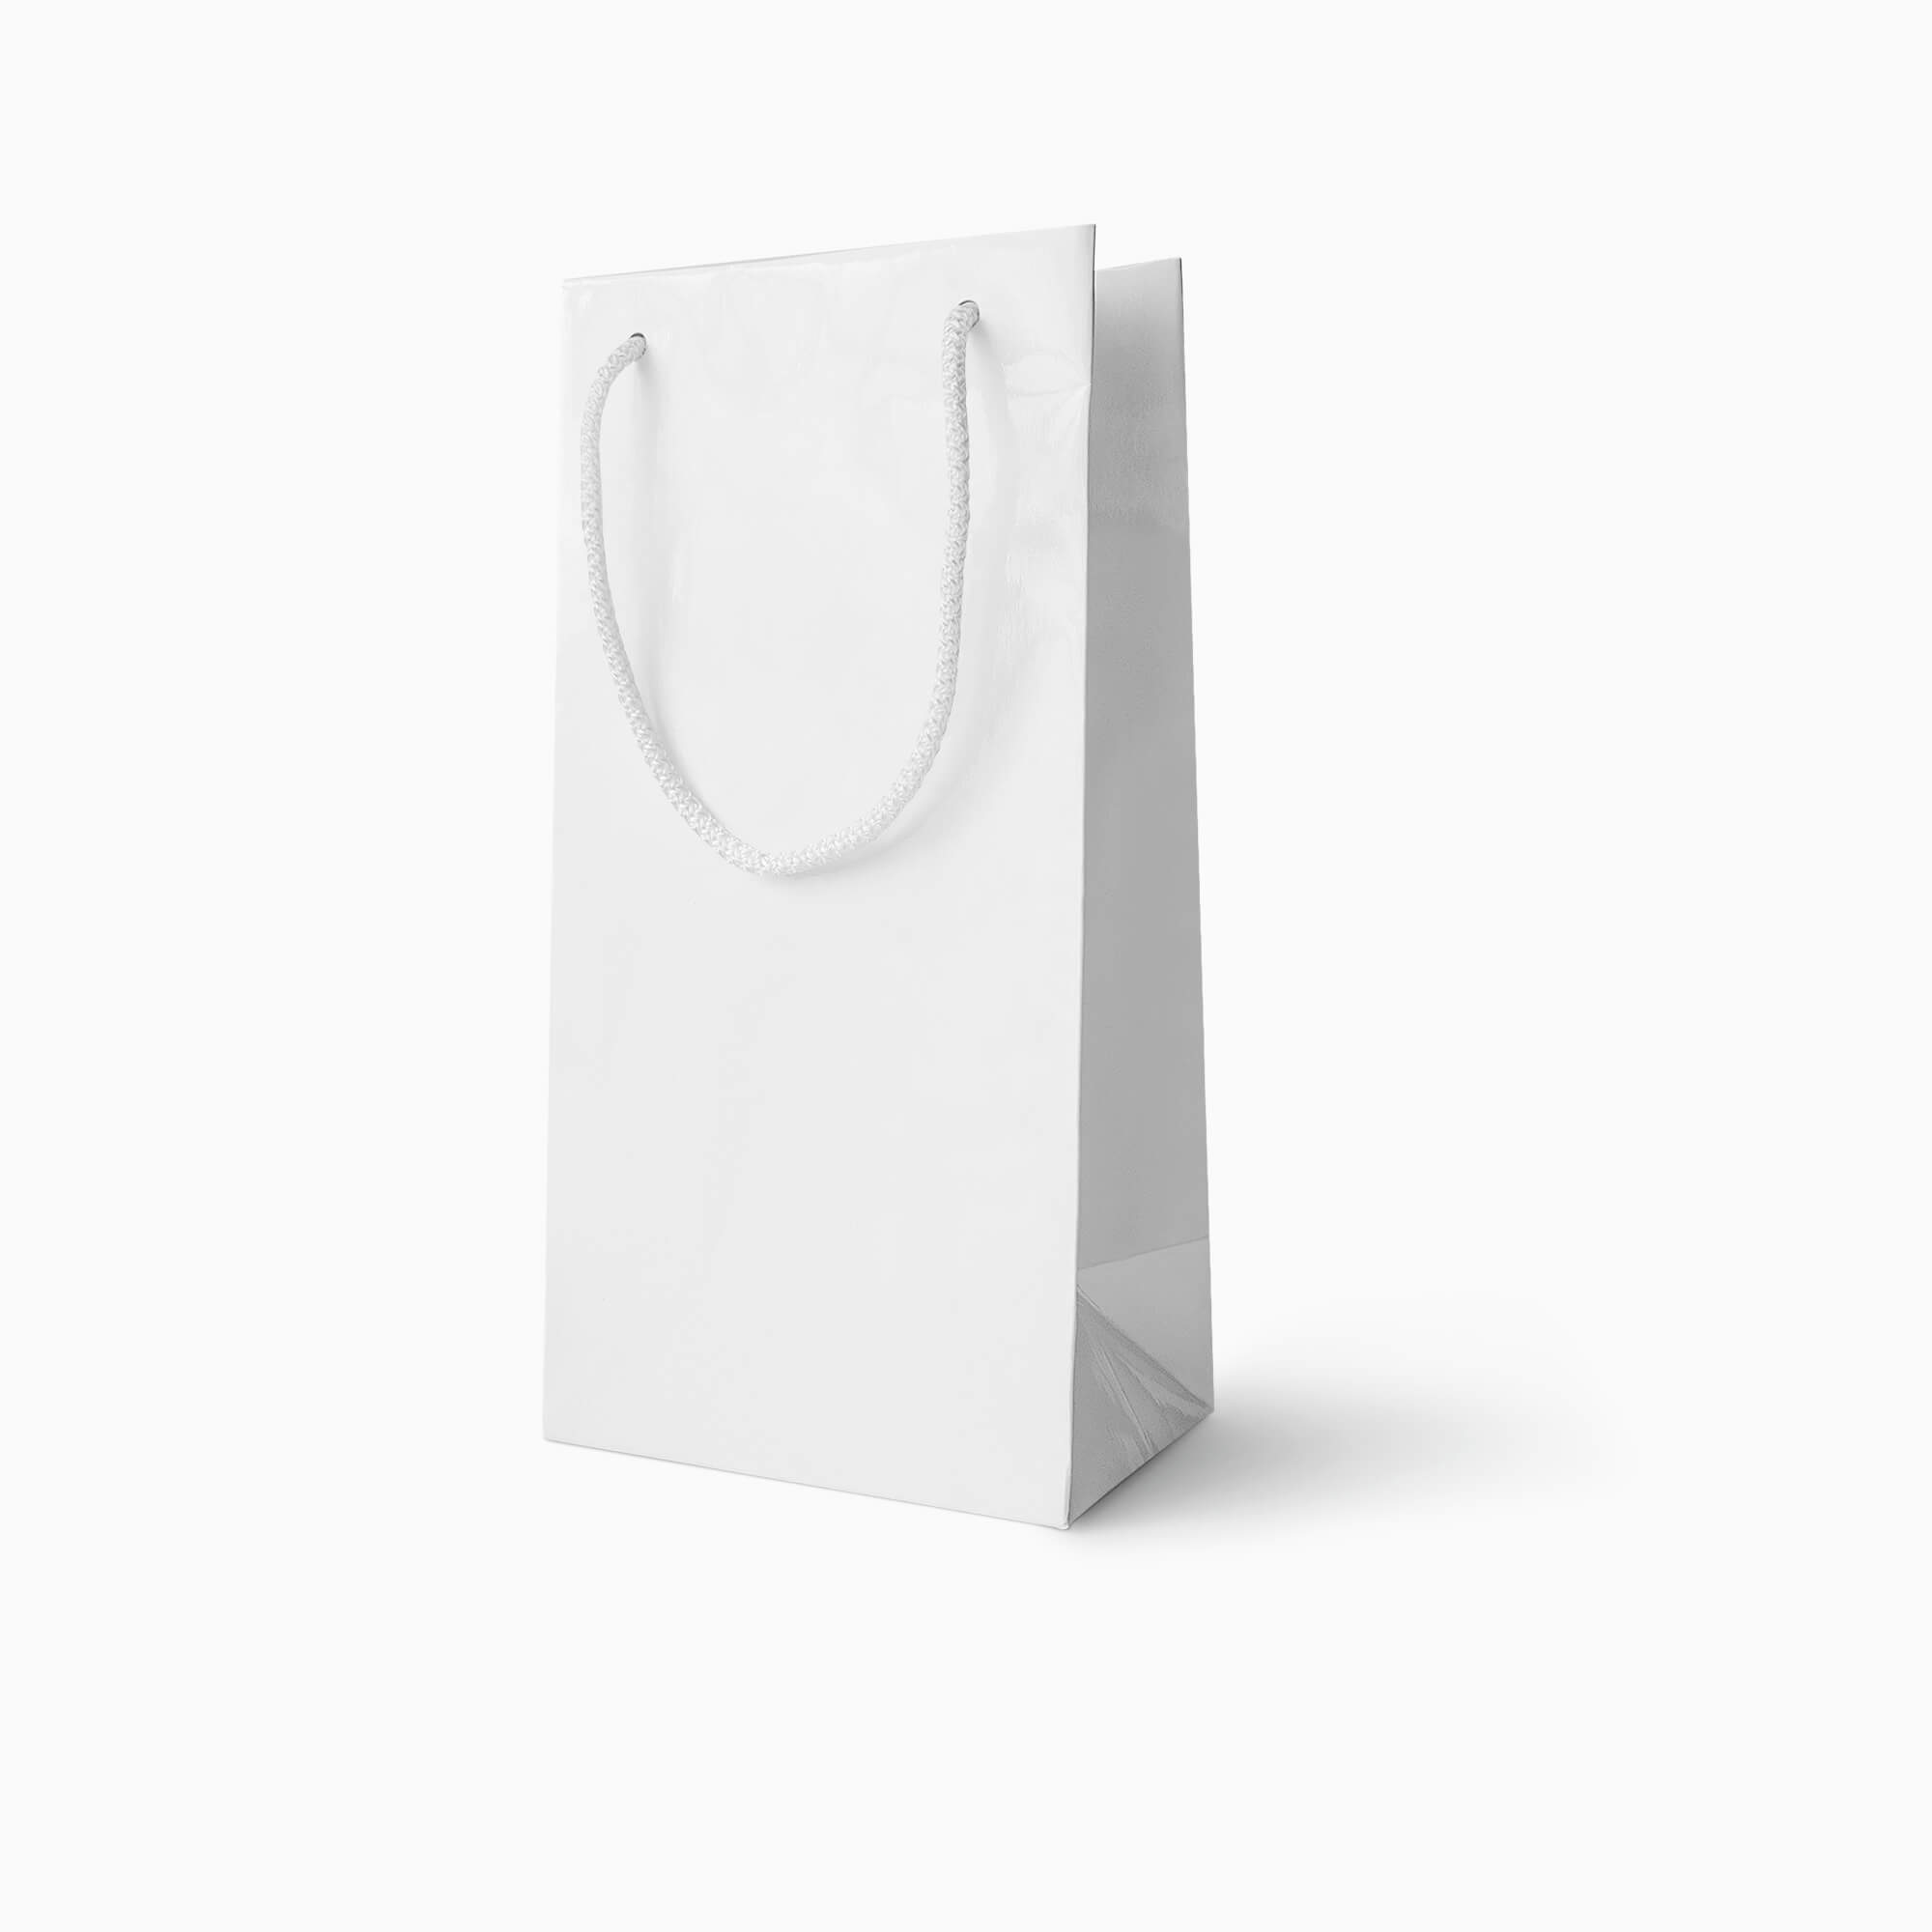 White shopping bag with handles. Free White Paper Bag Mockup Psd Template Mockup Den